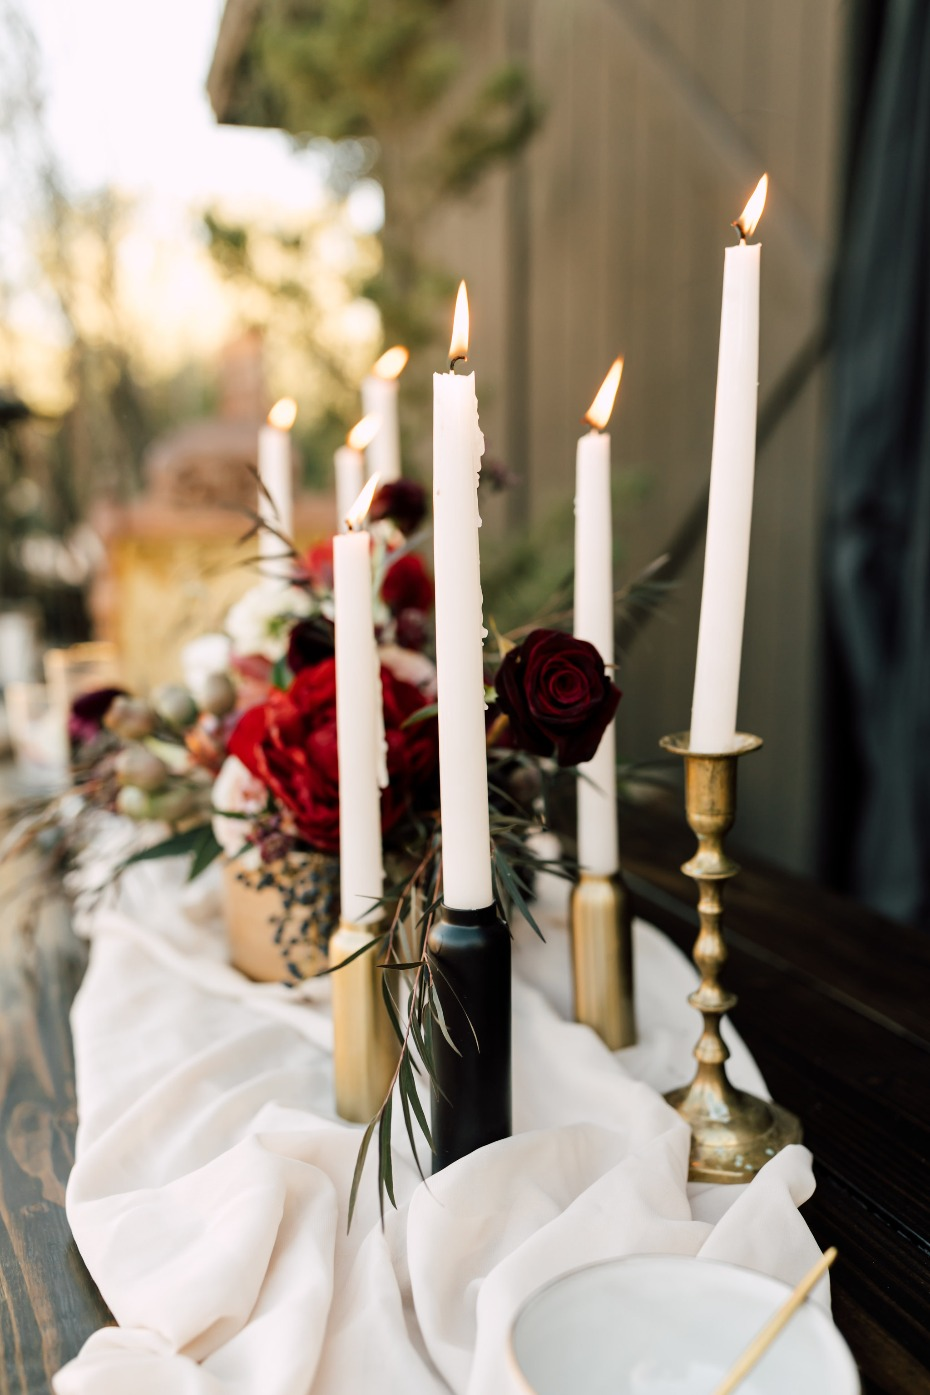 Tapered candles are a table must